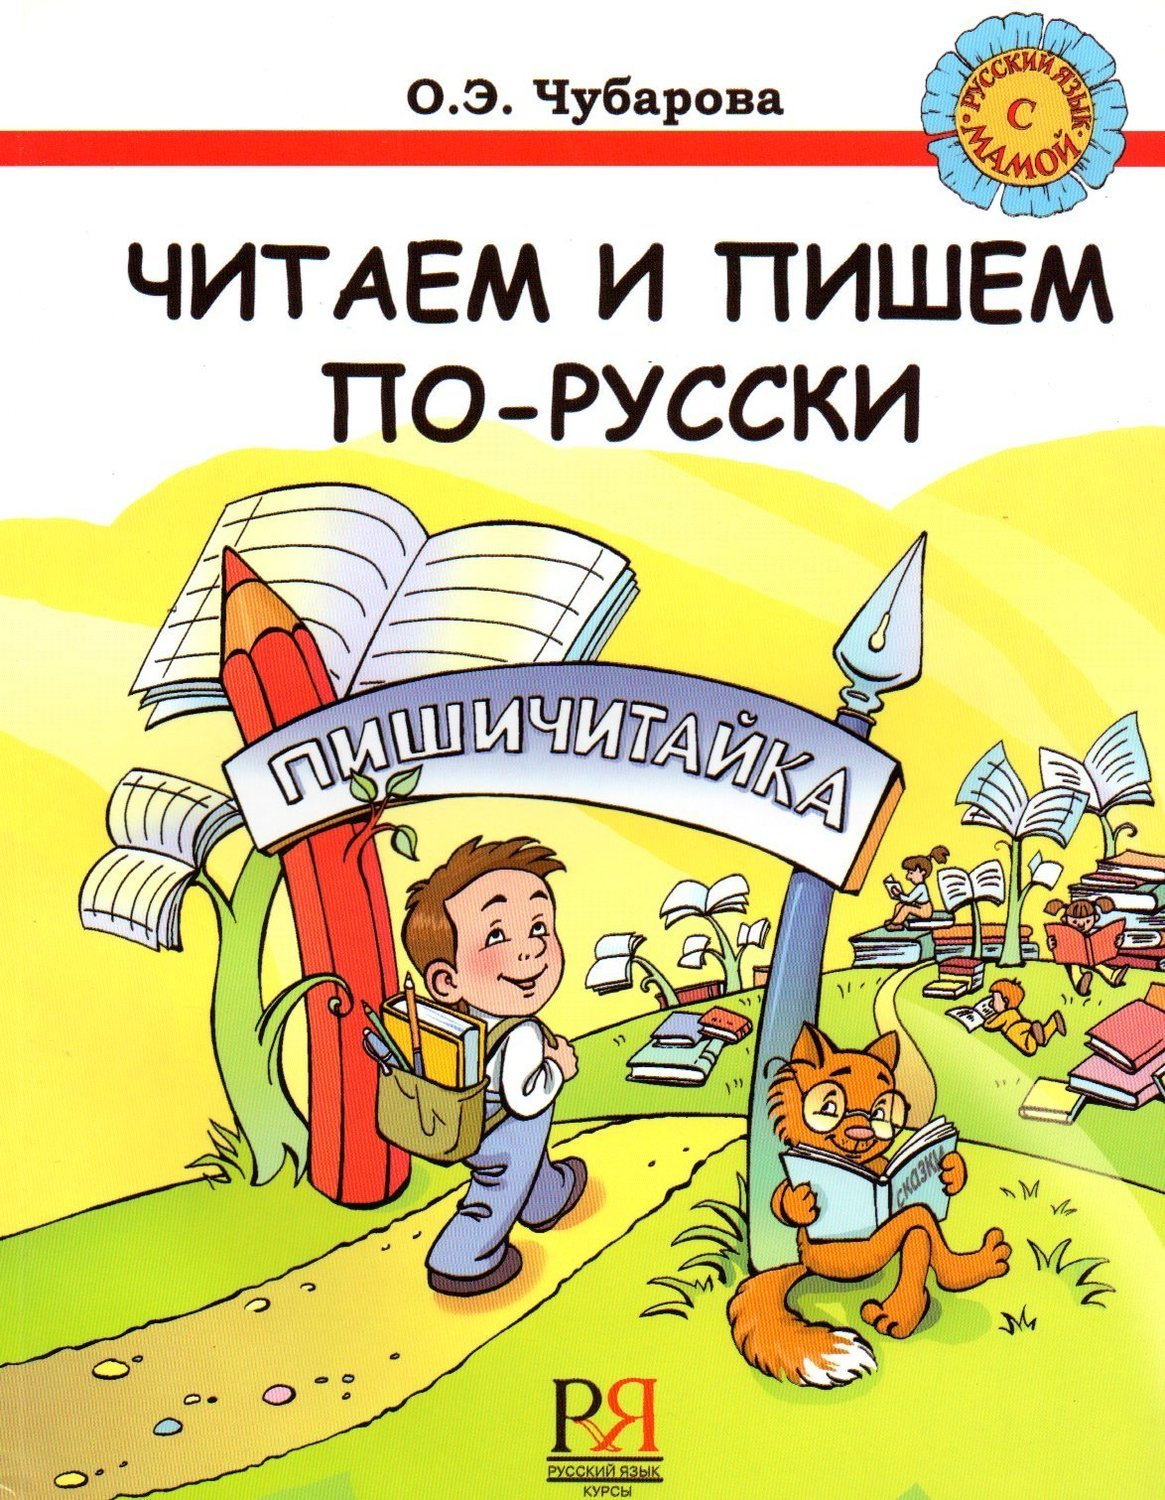 Chubarova, Olga. We read and write Russian. Textbook. Learn Russian with Mom Series ISBN 9785883371140